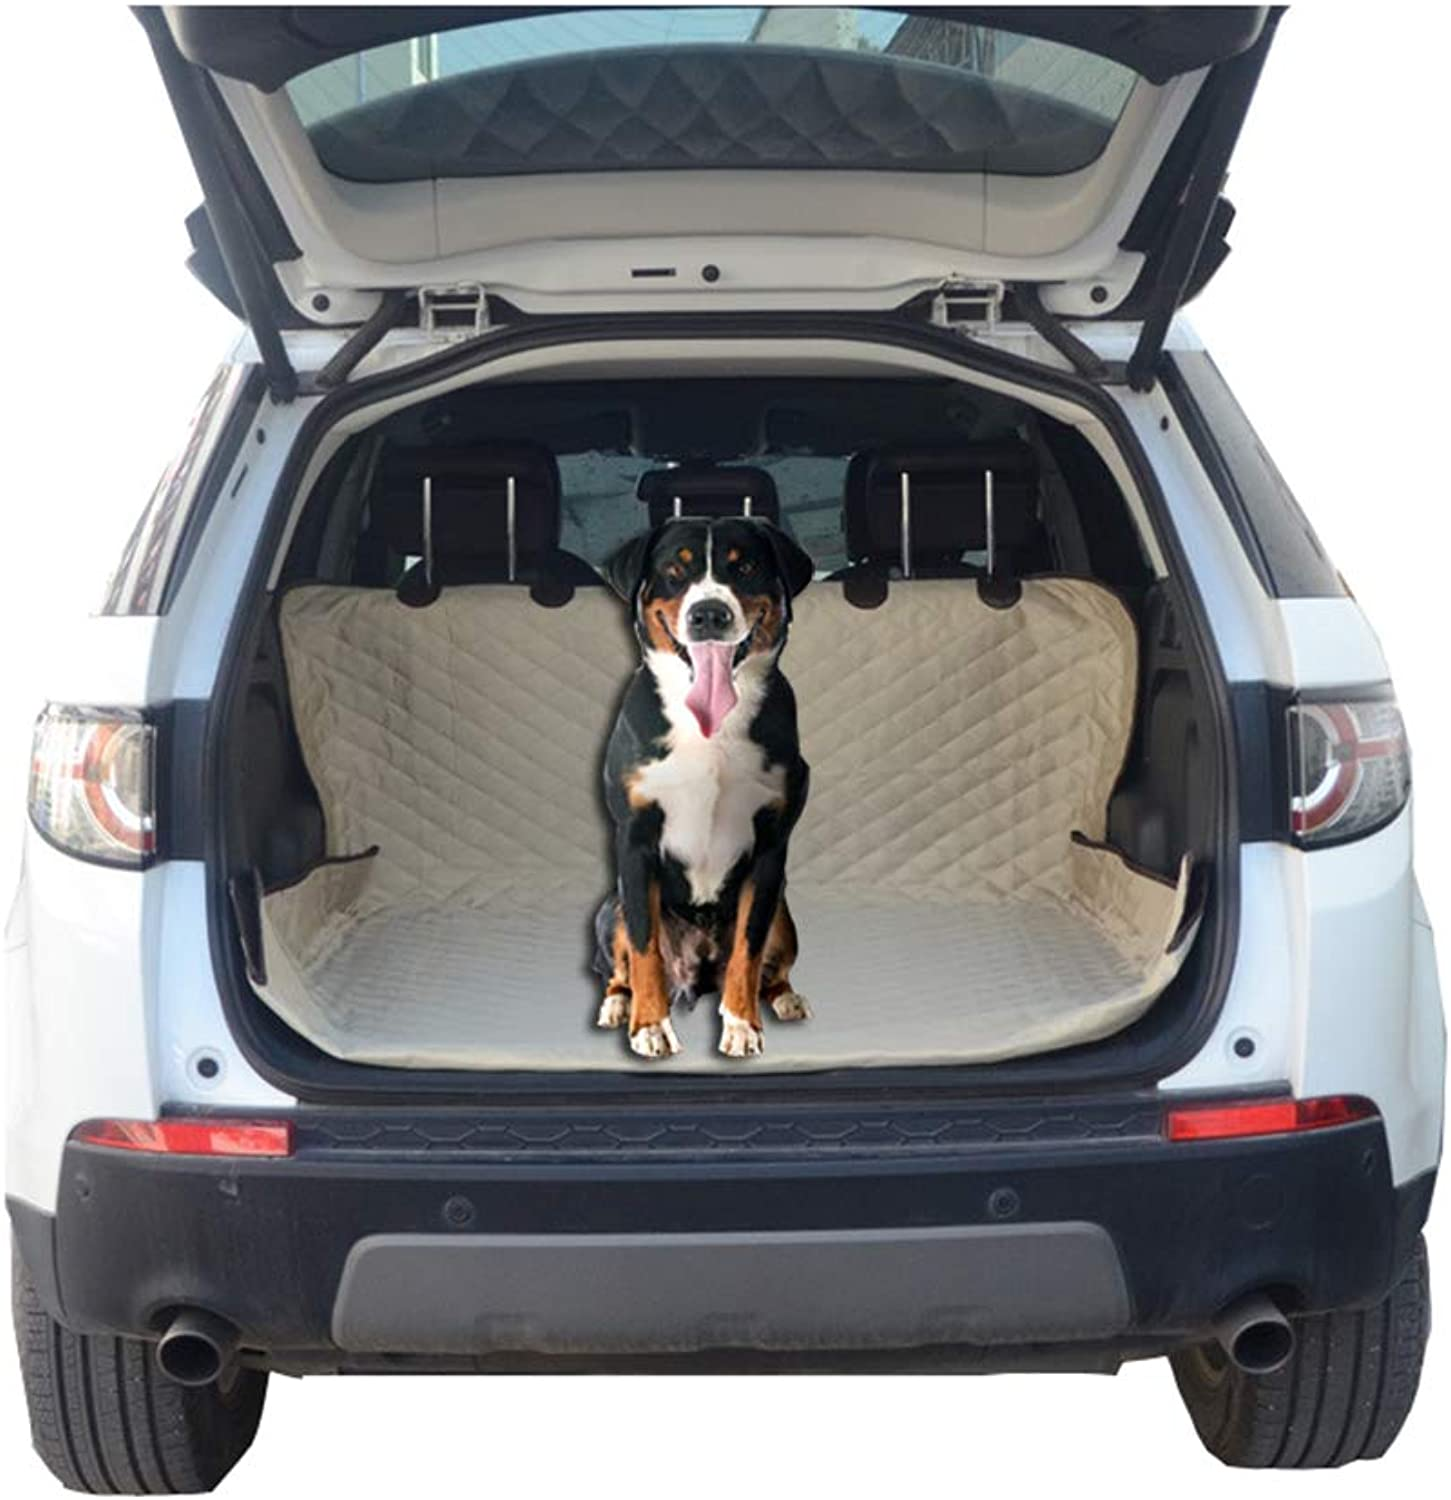 Cargo Liner Dog Seat Cover Car SUV,Pets Predection Hammock Cover Waterproof Scratch Proof Nonslip Backing Durable Backseat with Side Flaps for Car SUV Truck,Bumper Flap,Khaki